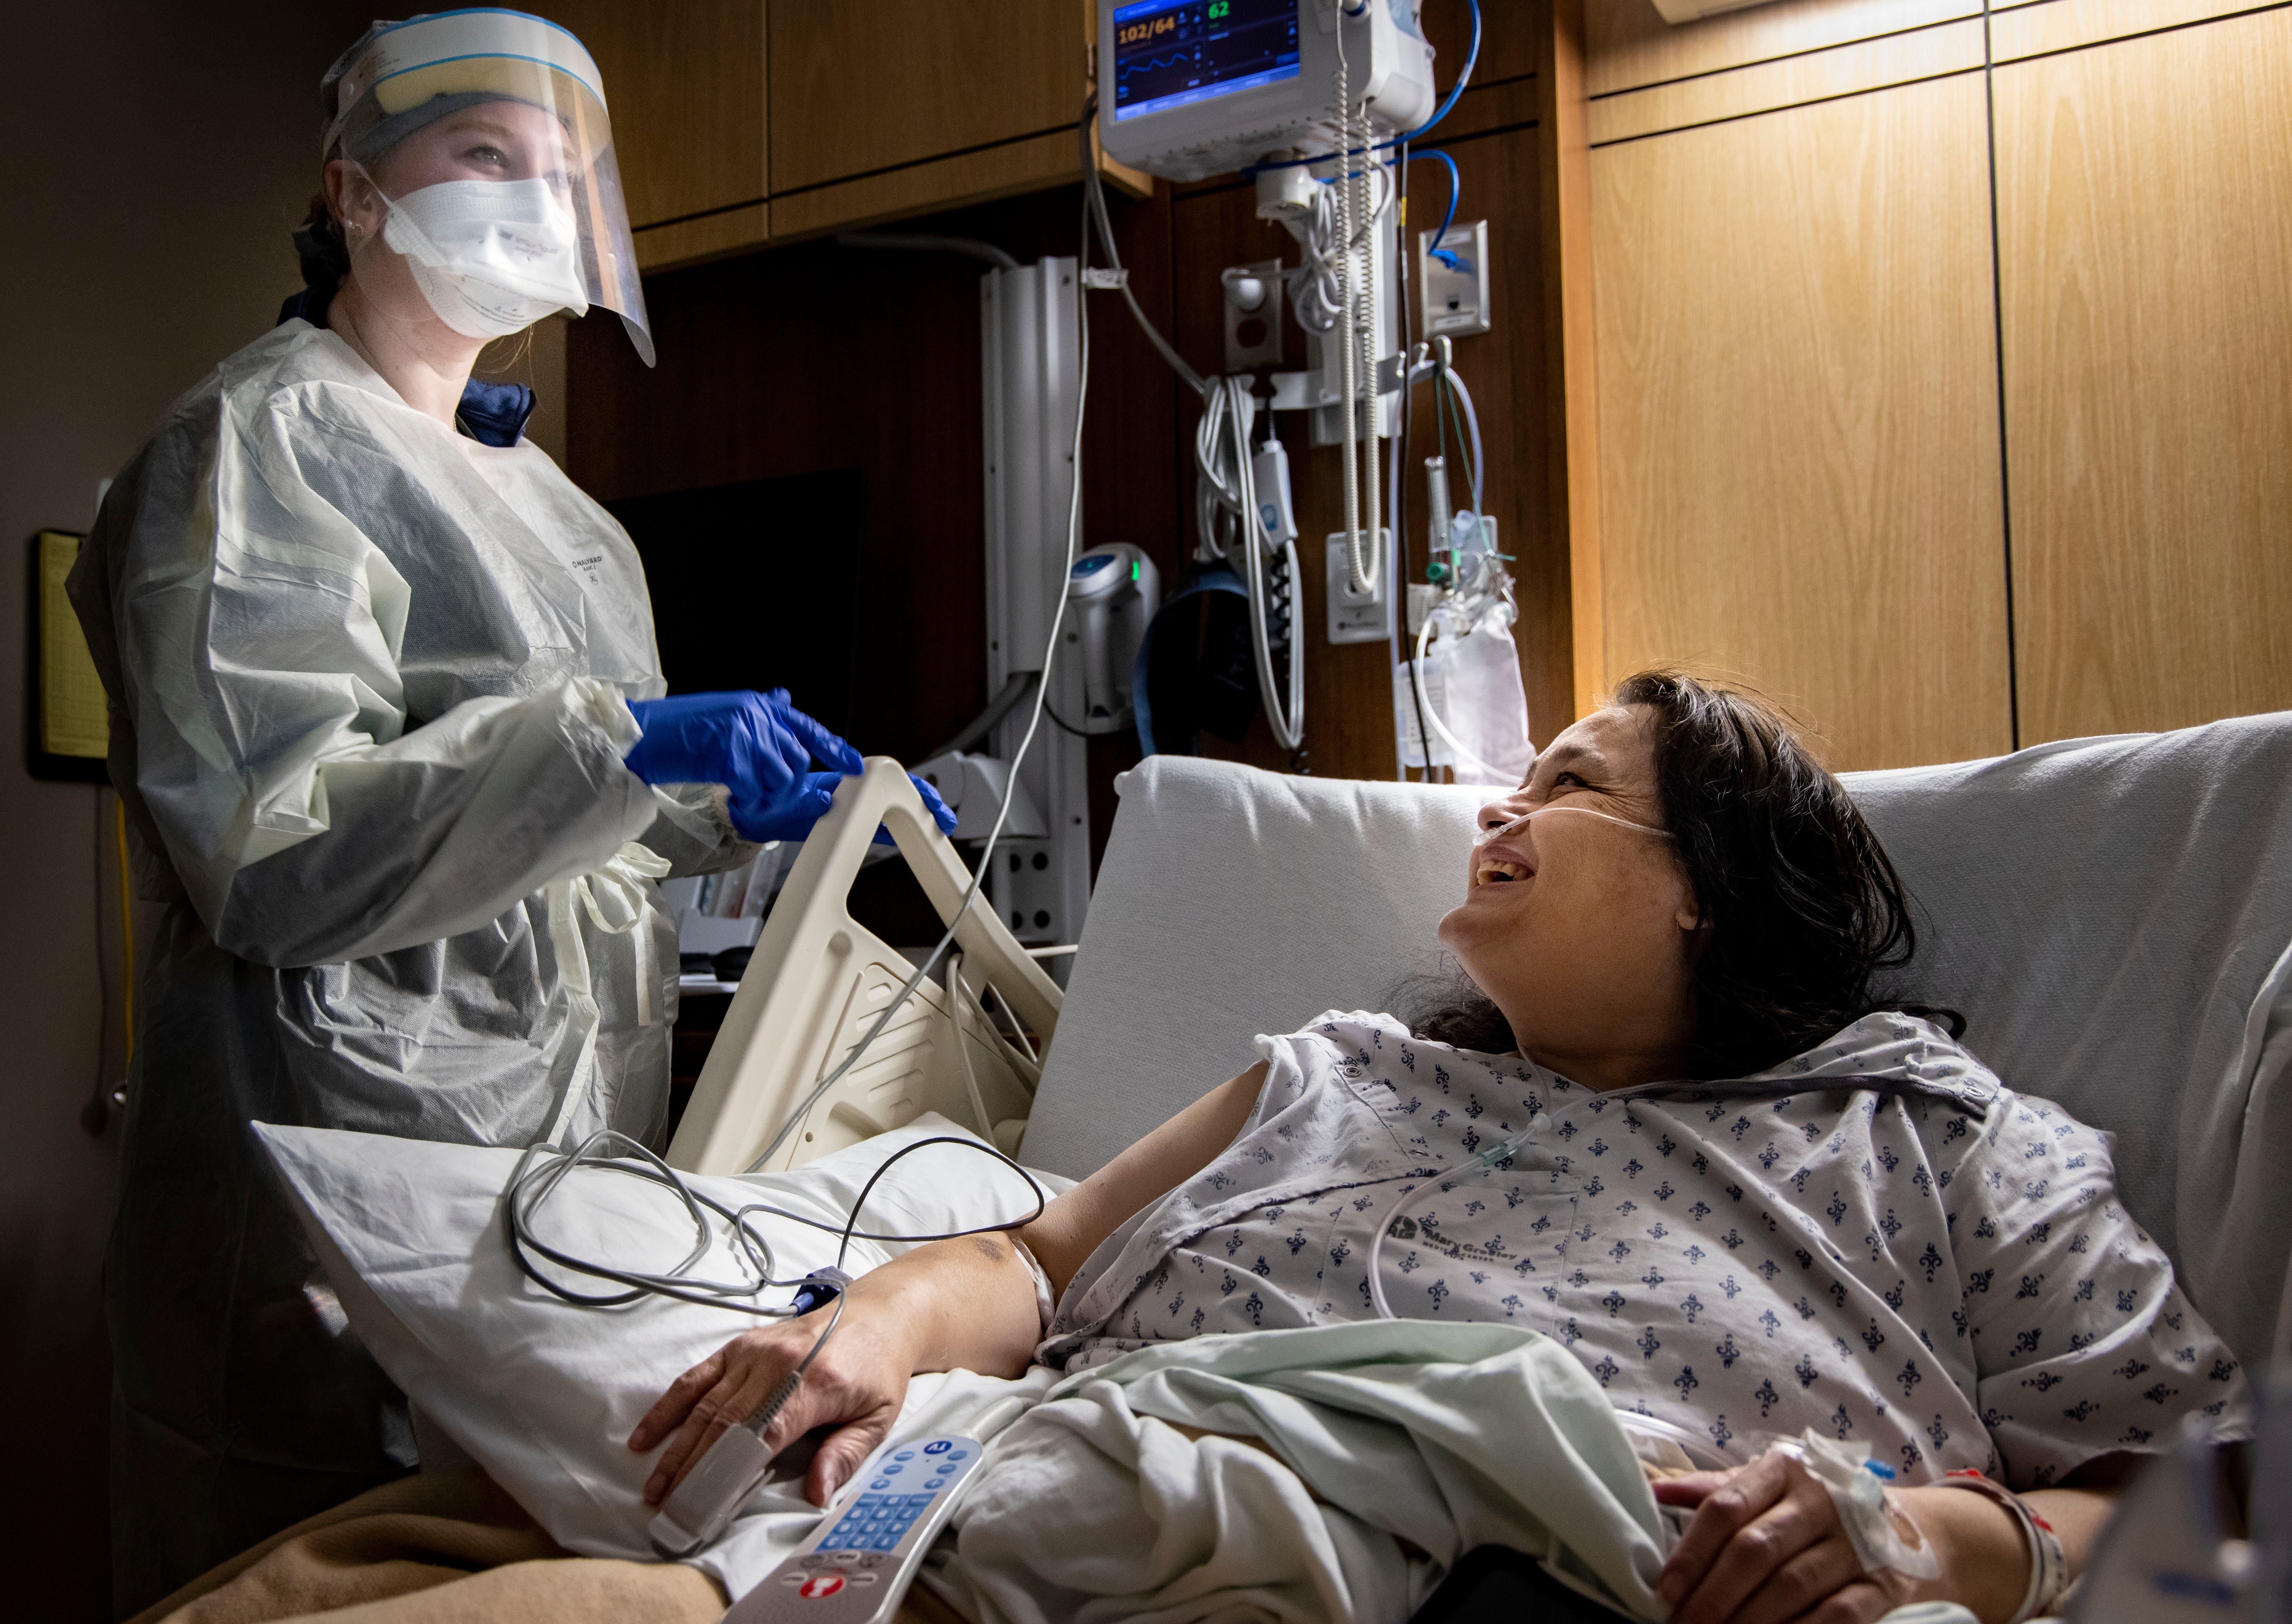 Nurse Connor Ramirez cares for Mary Embrey on Dec. 9 as she recovers from COVID-19 at Mary Greeley Medical Center in Ames.